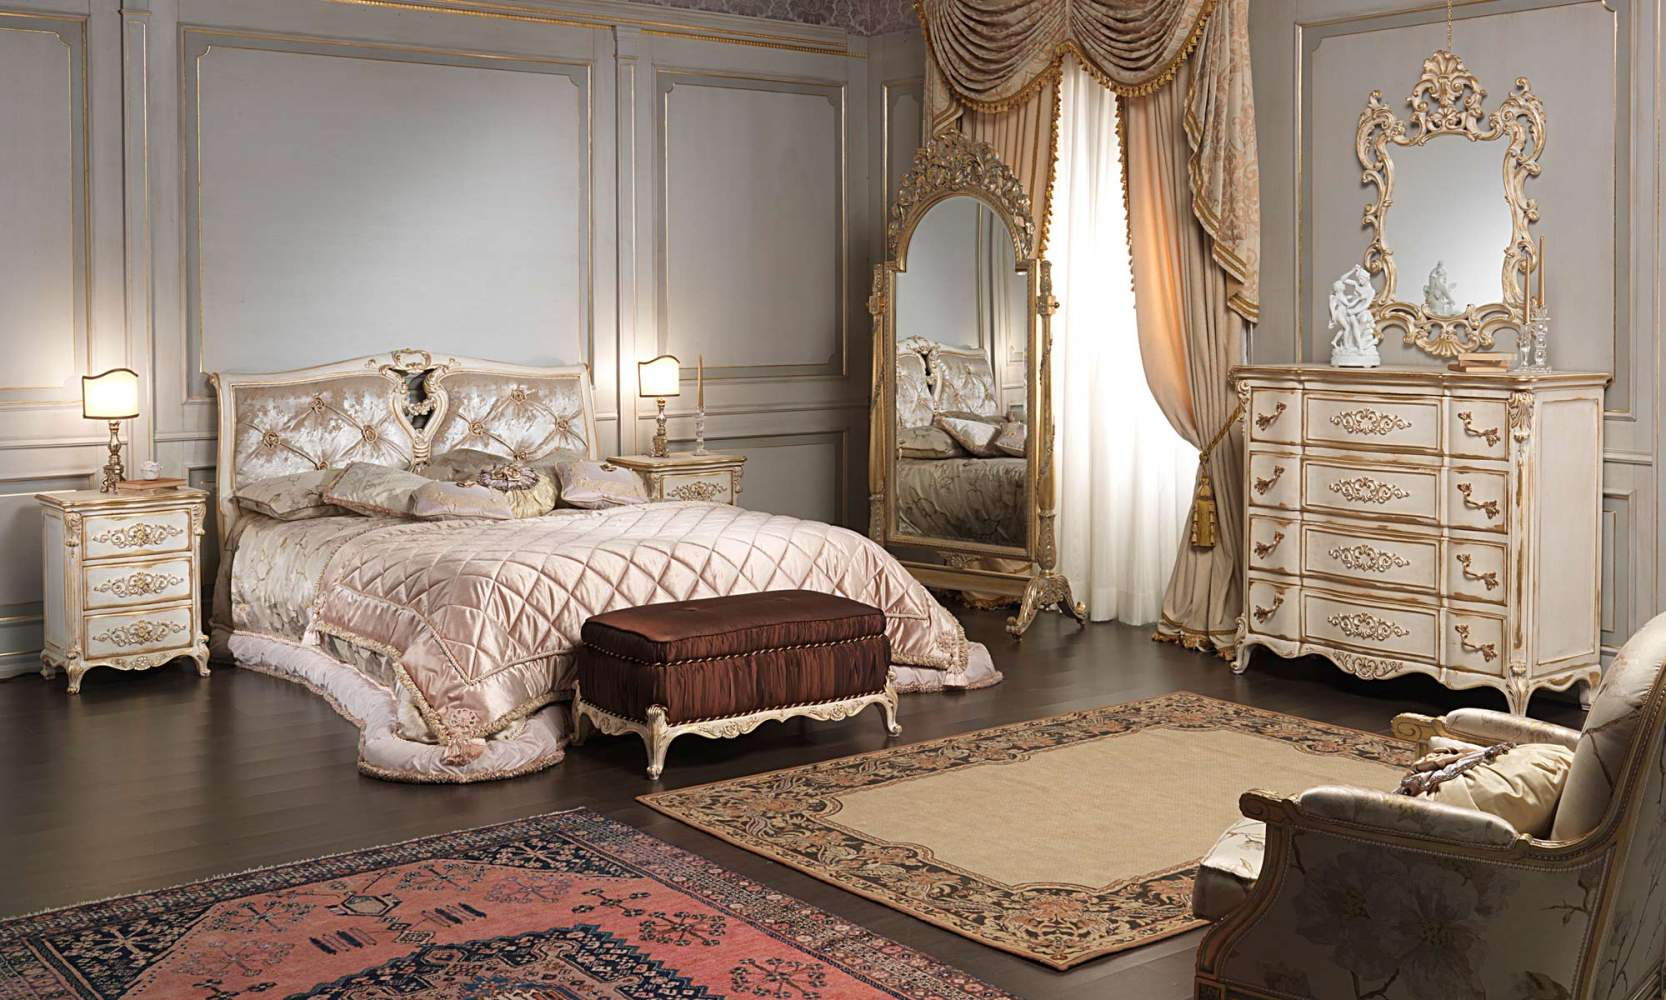 Classic Louis XVI bedroom, bed, padded bench, chest of drawers, night table, wall mirror and mirror with wheels